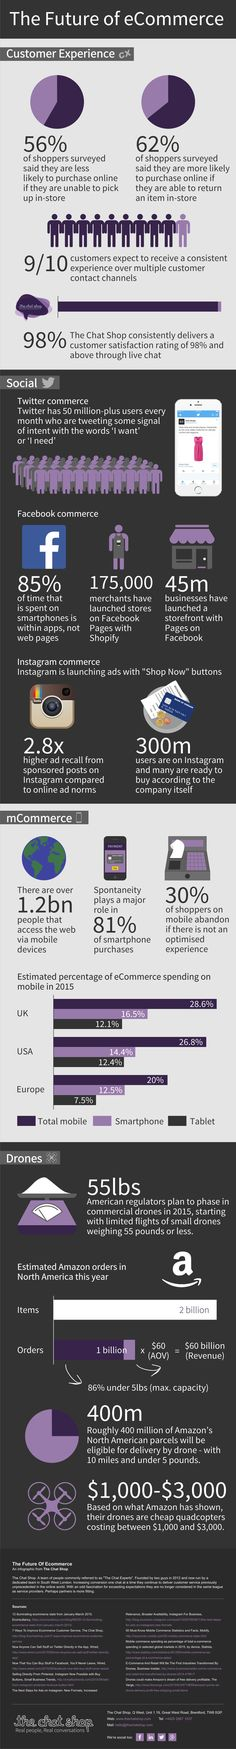 The Future of eCommerce #infographic #Ecommece #Marketing